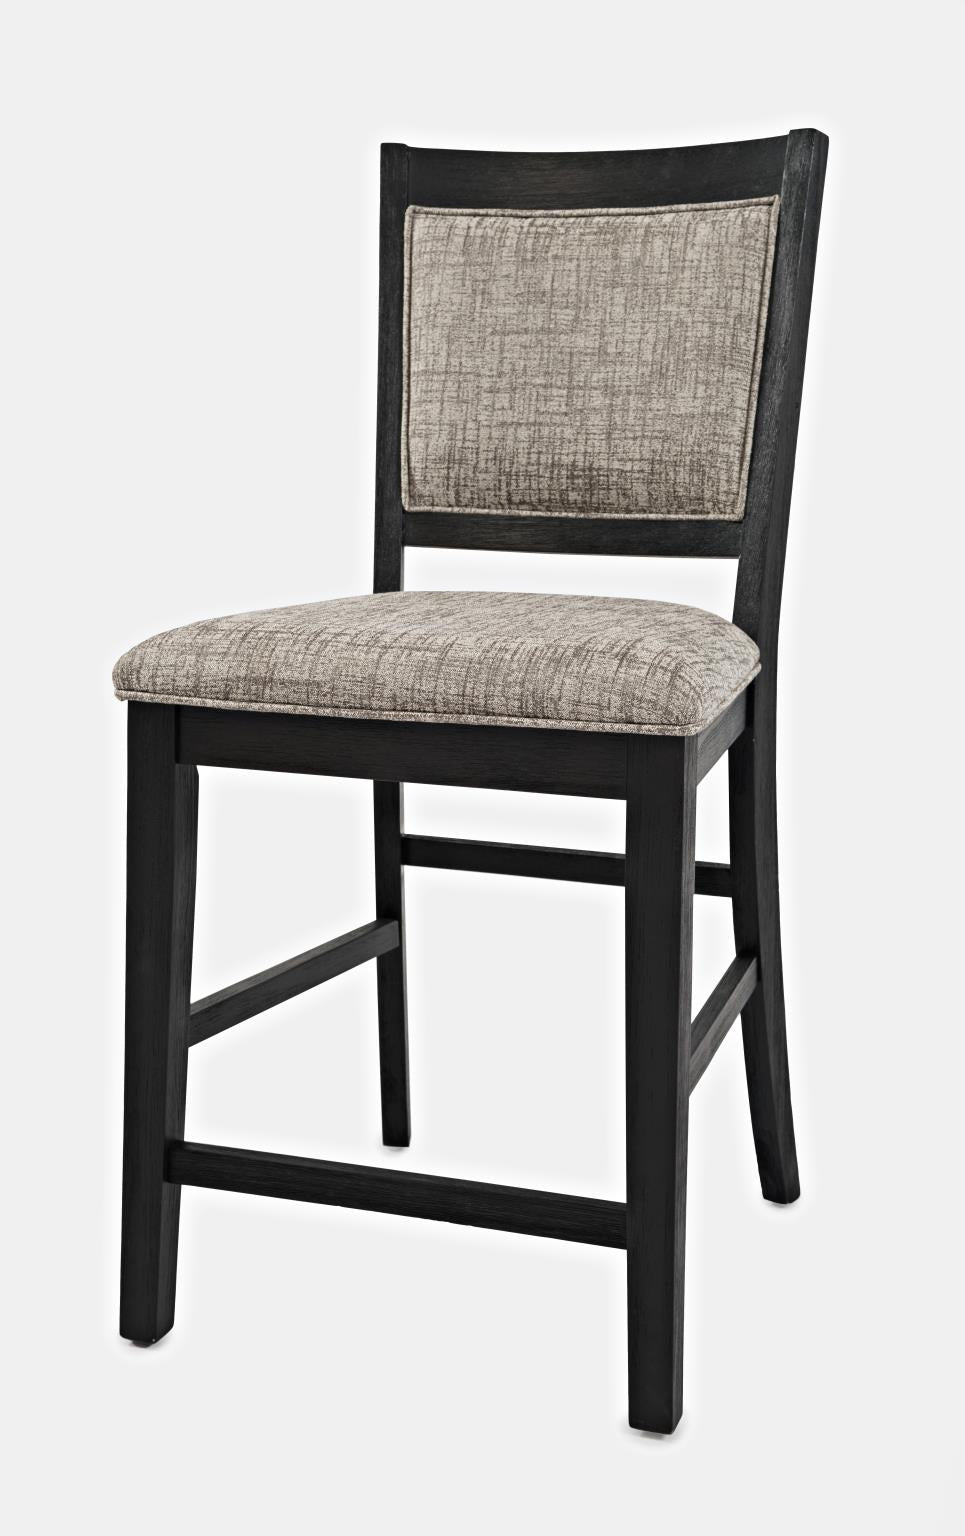 Altamonte Upholstered  Counter Stool - Lifestyle Furniture